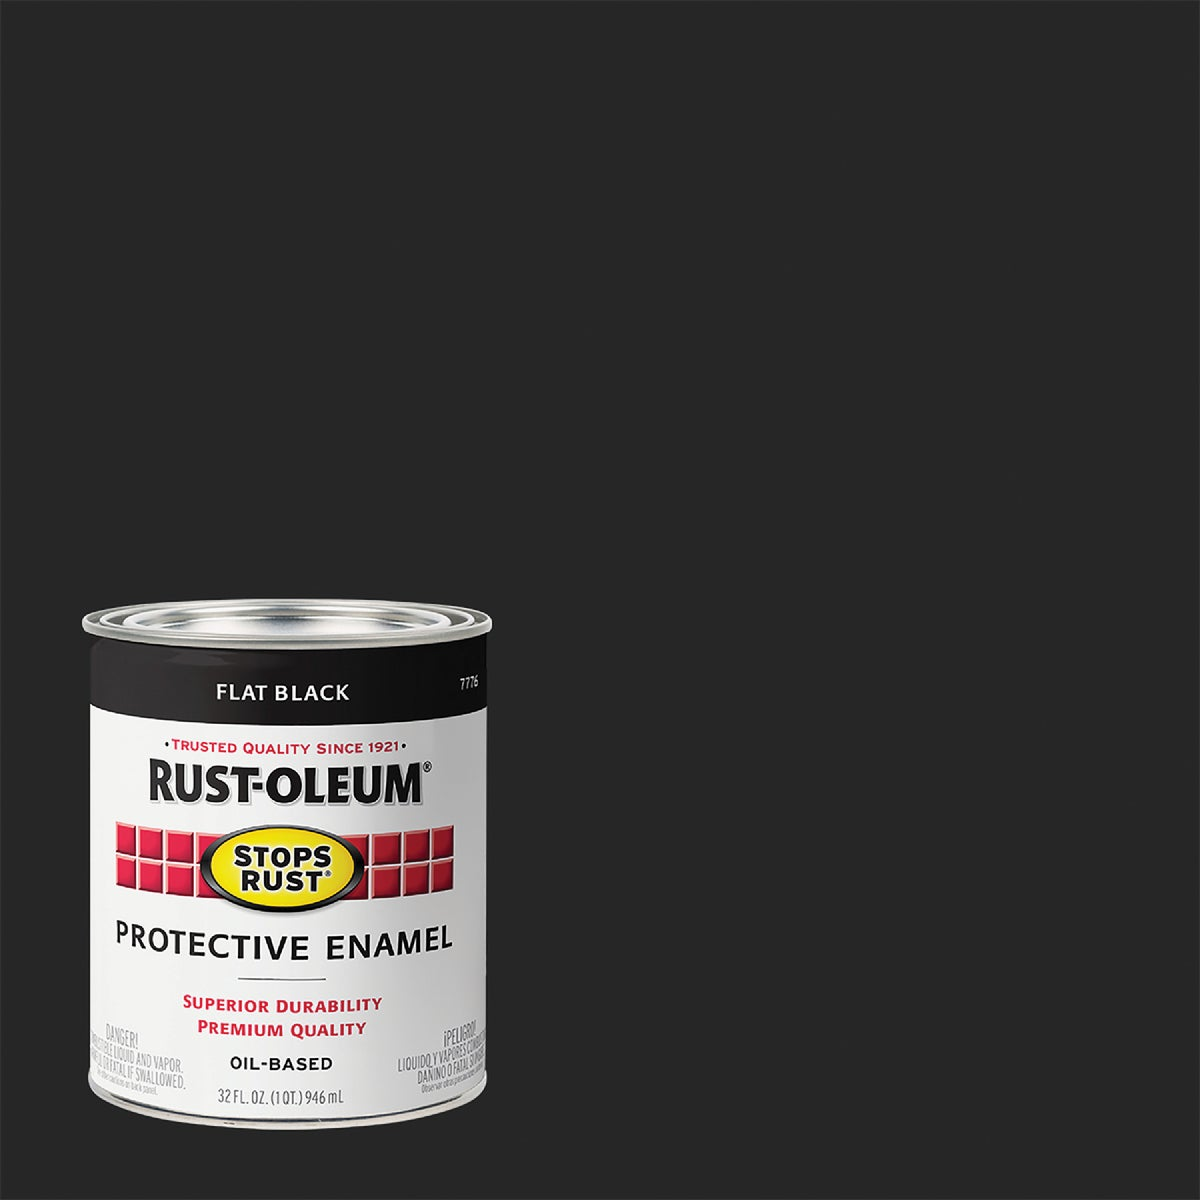 FLAT BLACK ENAMEL - 7776-502 by Rustoleum